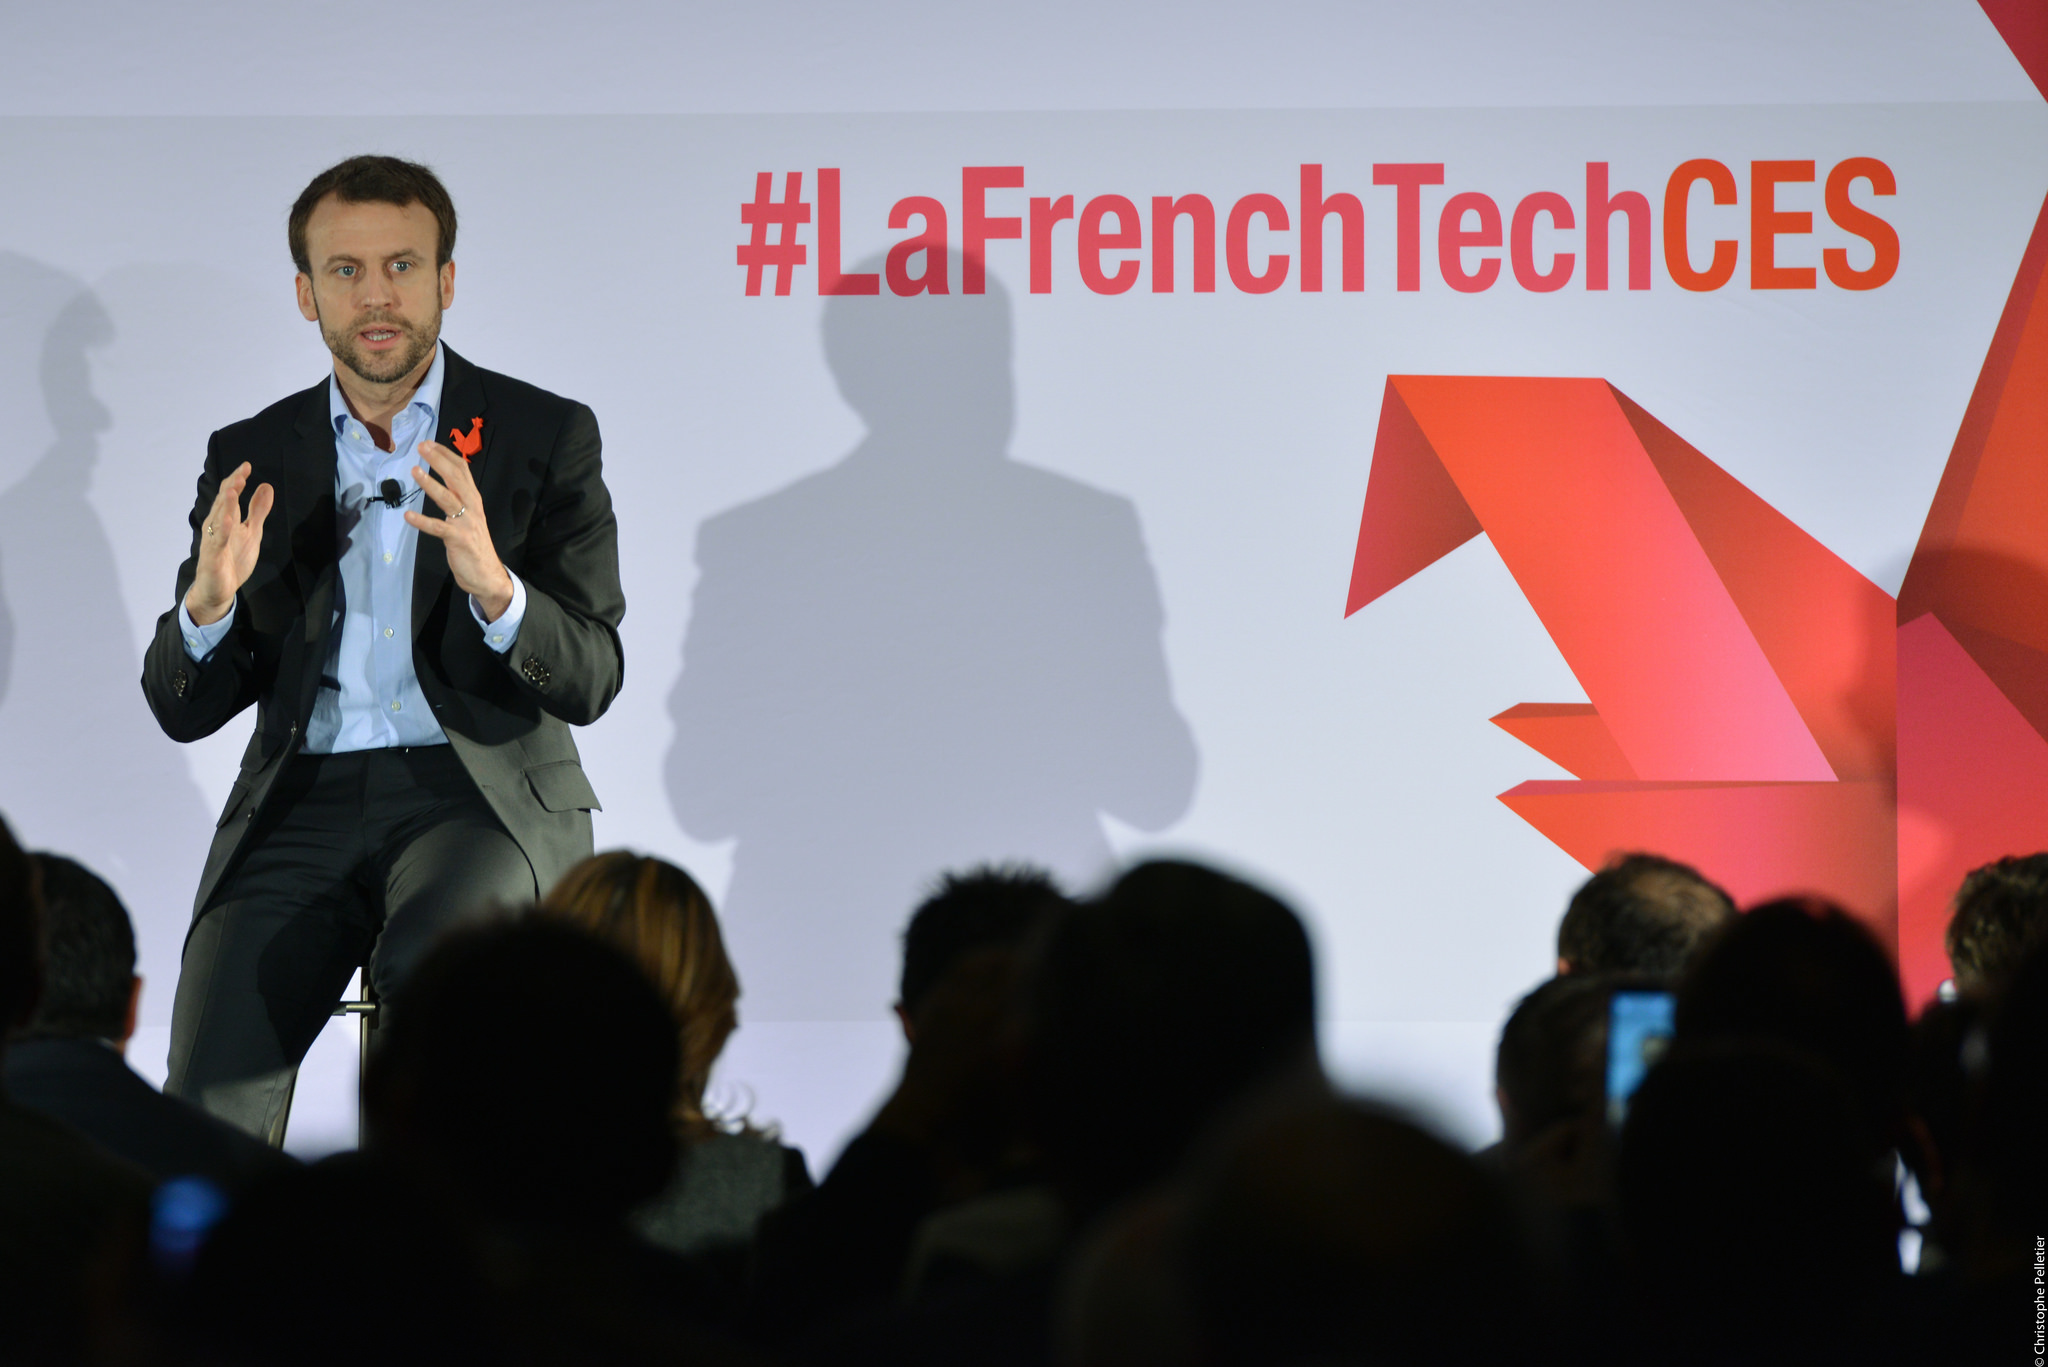 MyFrenchLife™ – MyFrenchLife.org - La French Tech - startups in France - technology - Emmanuel Macron - CES